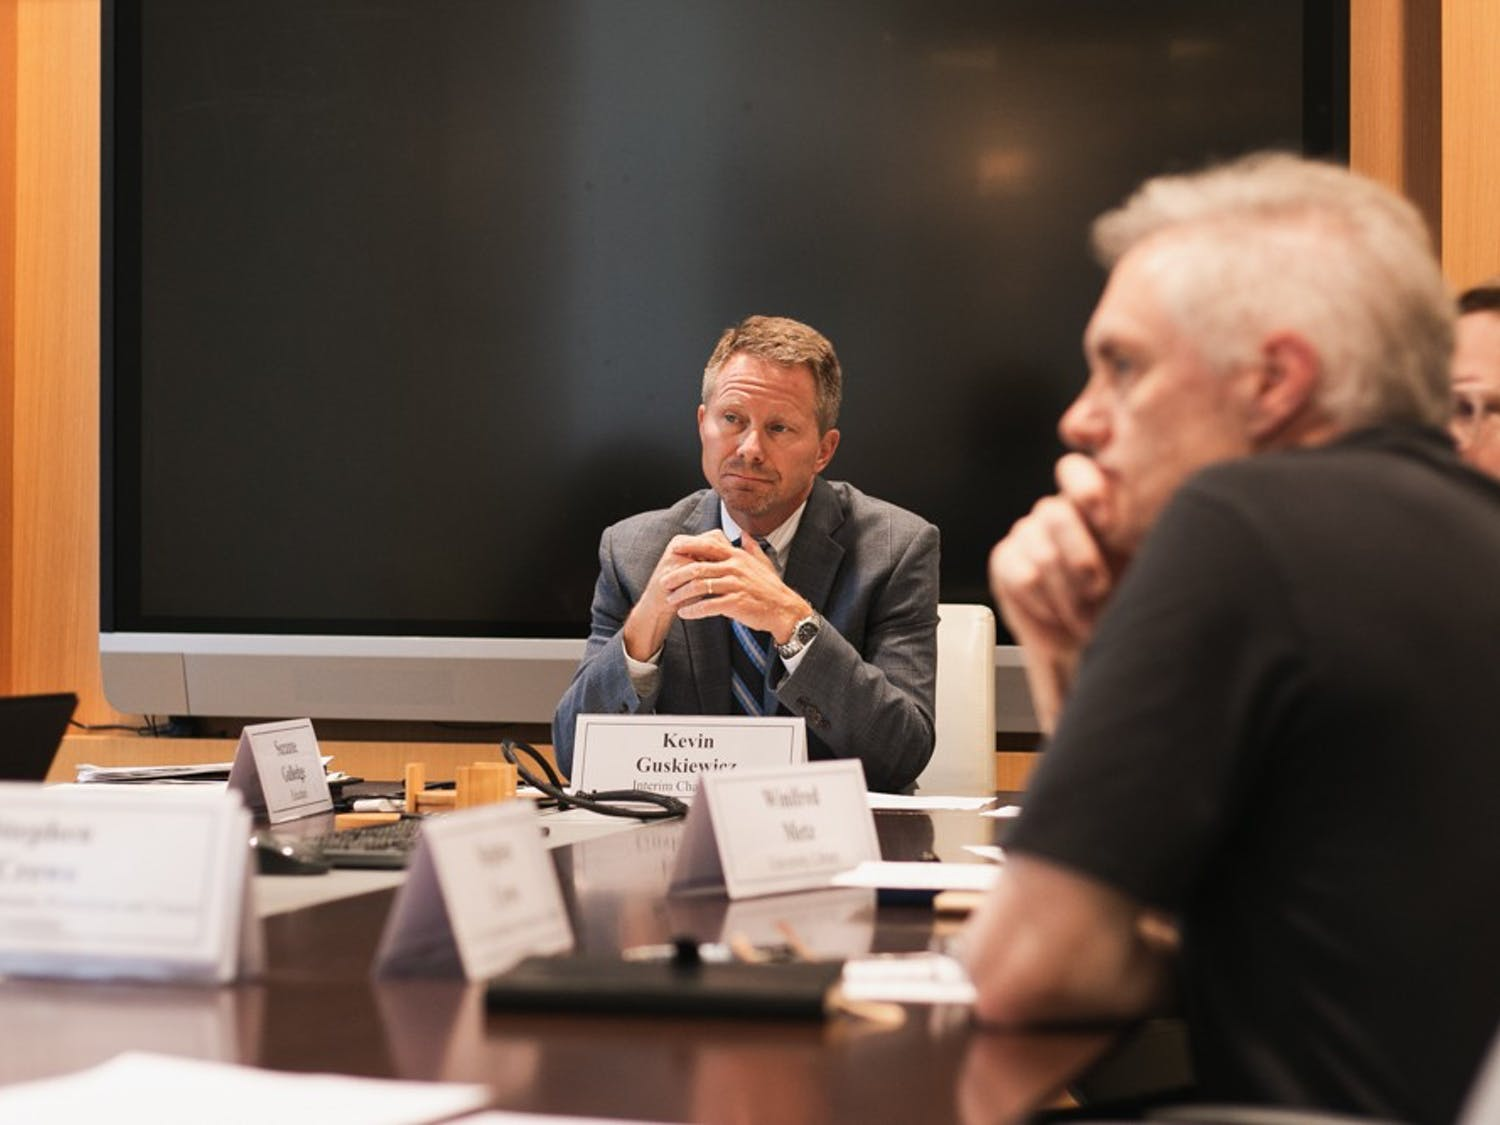 Interim Chancellor Kevin Guskiewicz hears from the Chancellor's Advisory Committee in the conference room of South Building in Chapel Hill on Tuesday, Sept. 24, 2019.